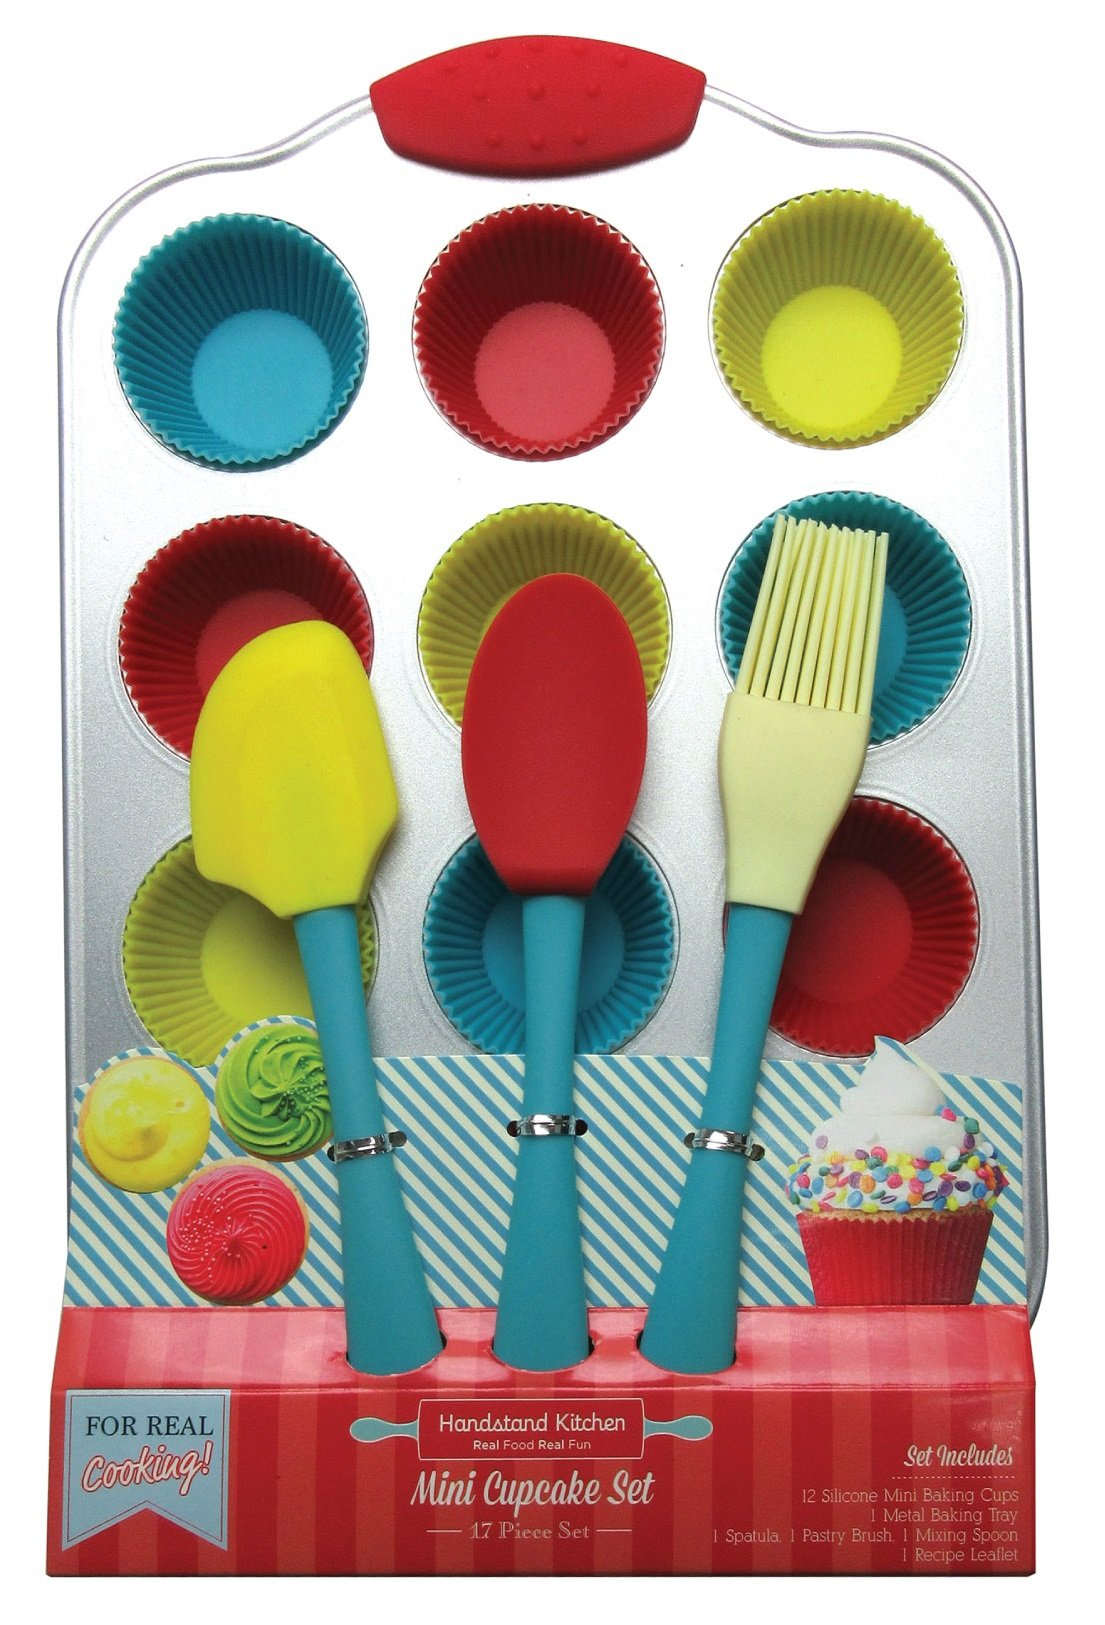 Handstand Kitchen 20-piece Real Mini Cupcake Baking Set with Recipes for Kids